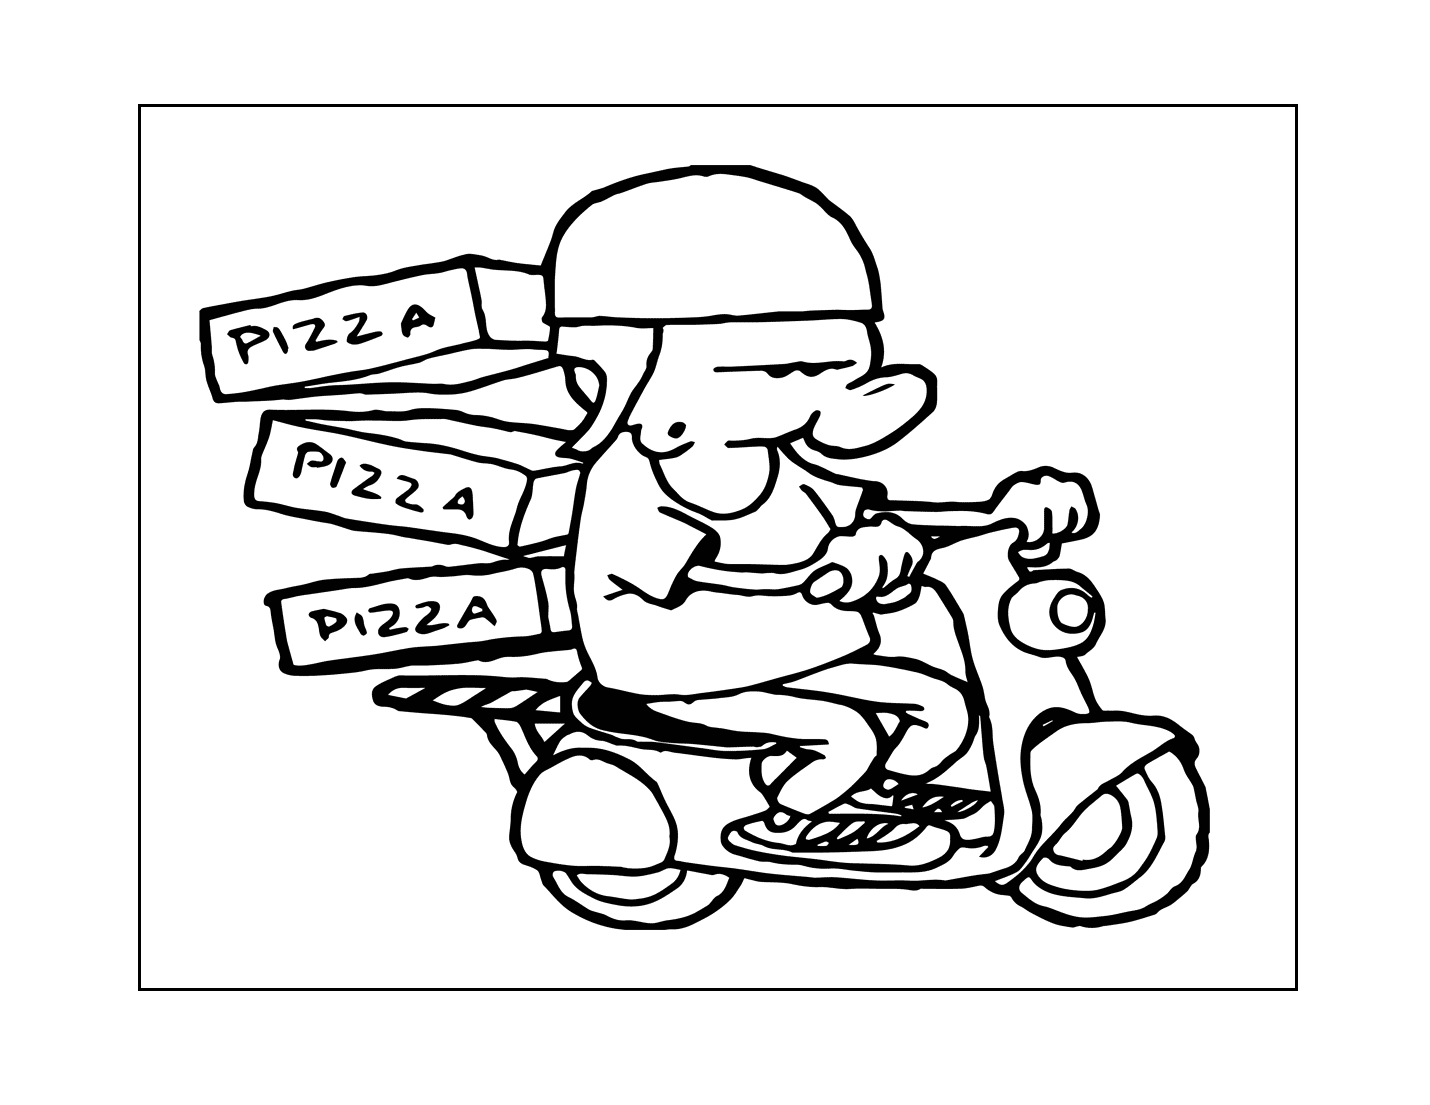 Pizza Delivery Coloring Page